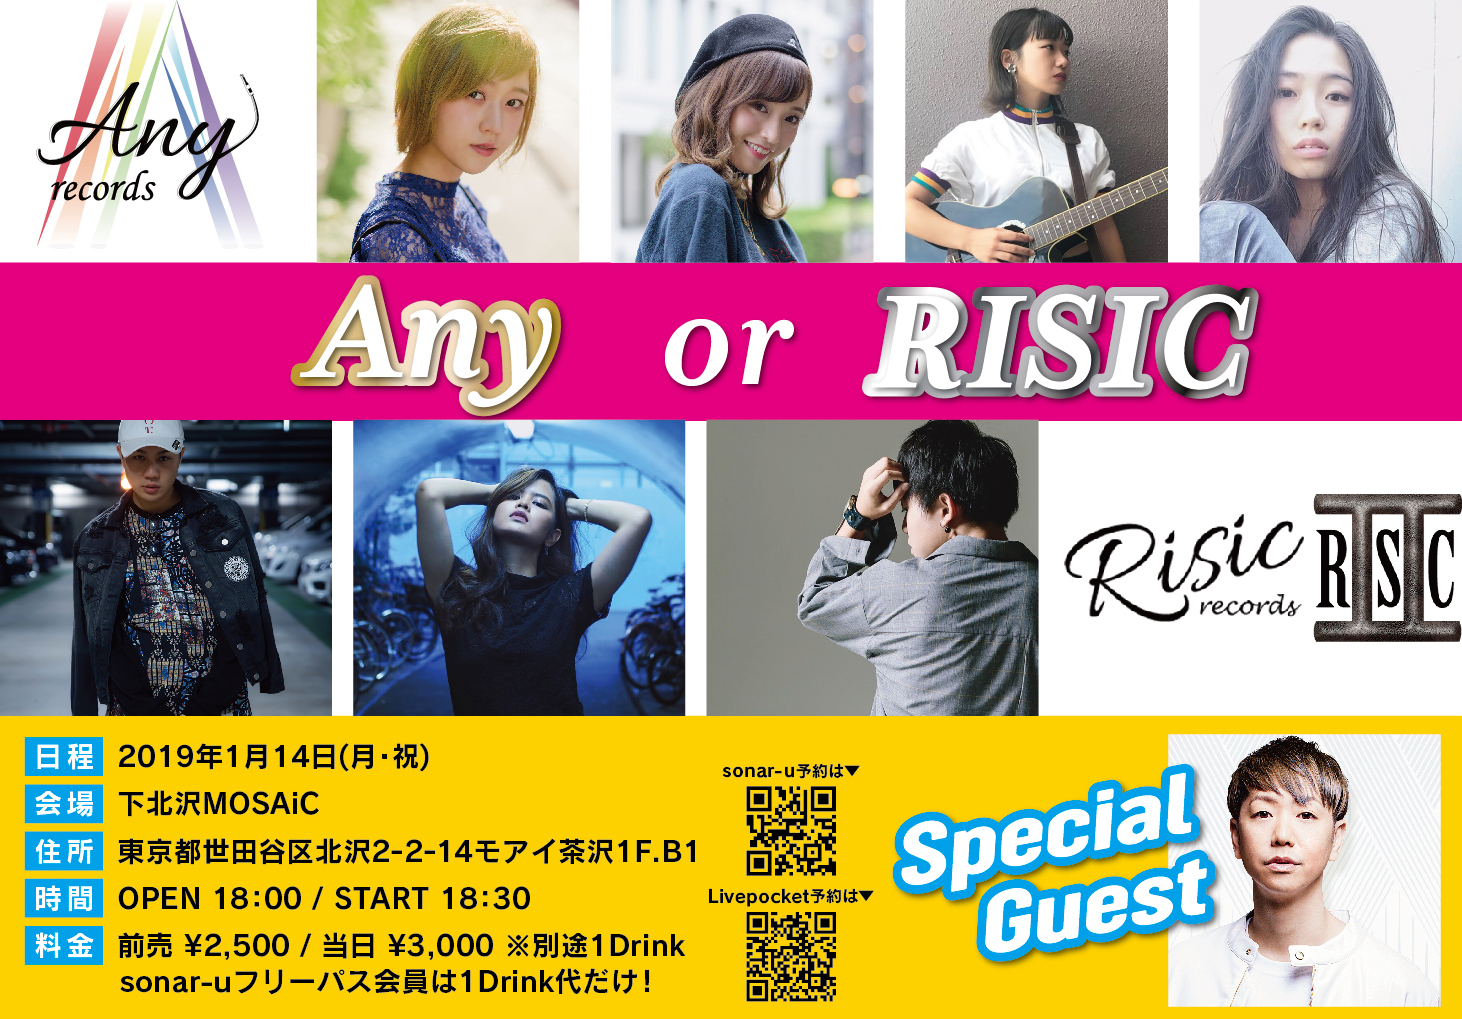 Any records & RISIC records設立イベント「Any or RISIC」